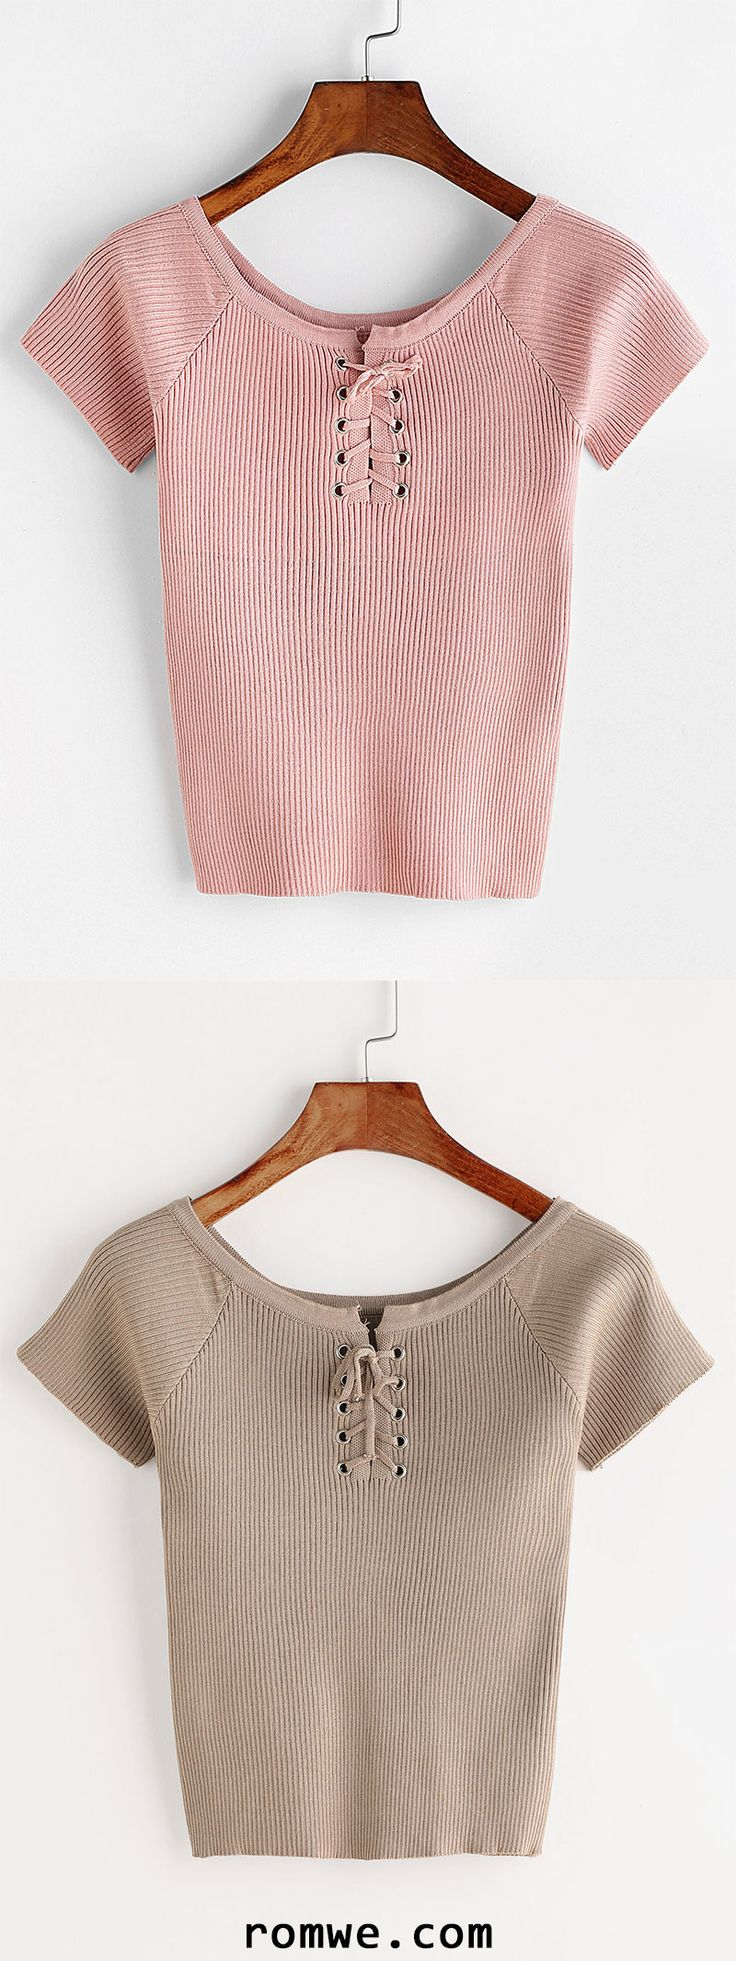 Lace Up Front Ribbed Knitted T-shirt